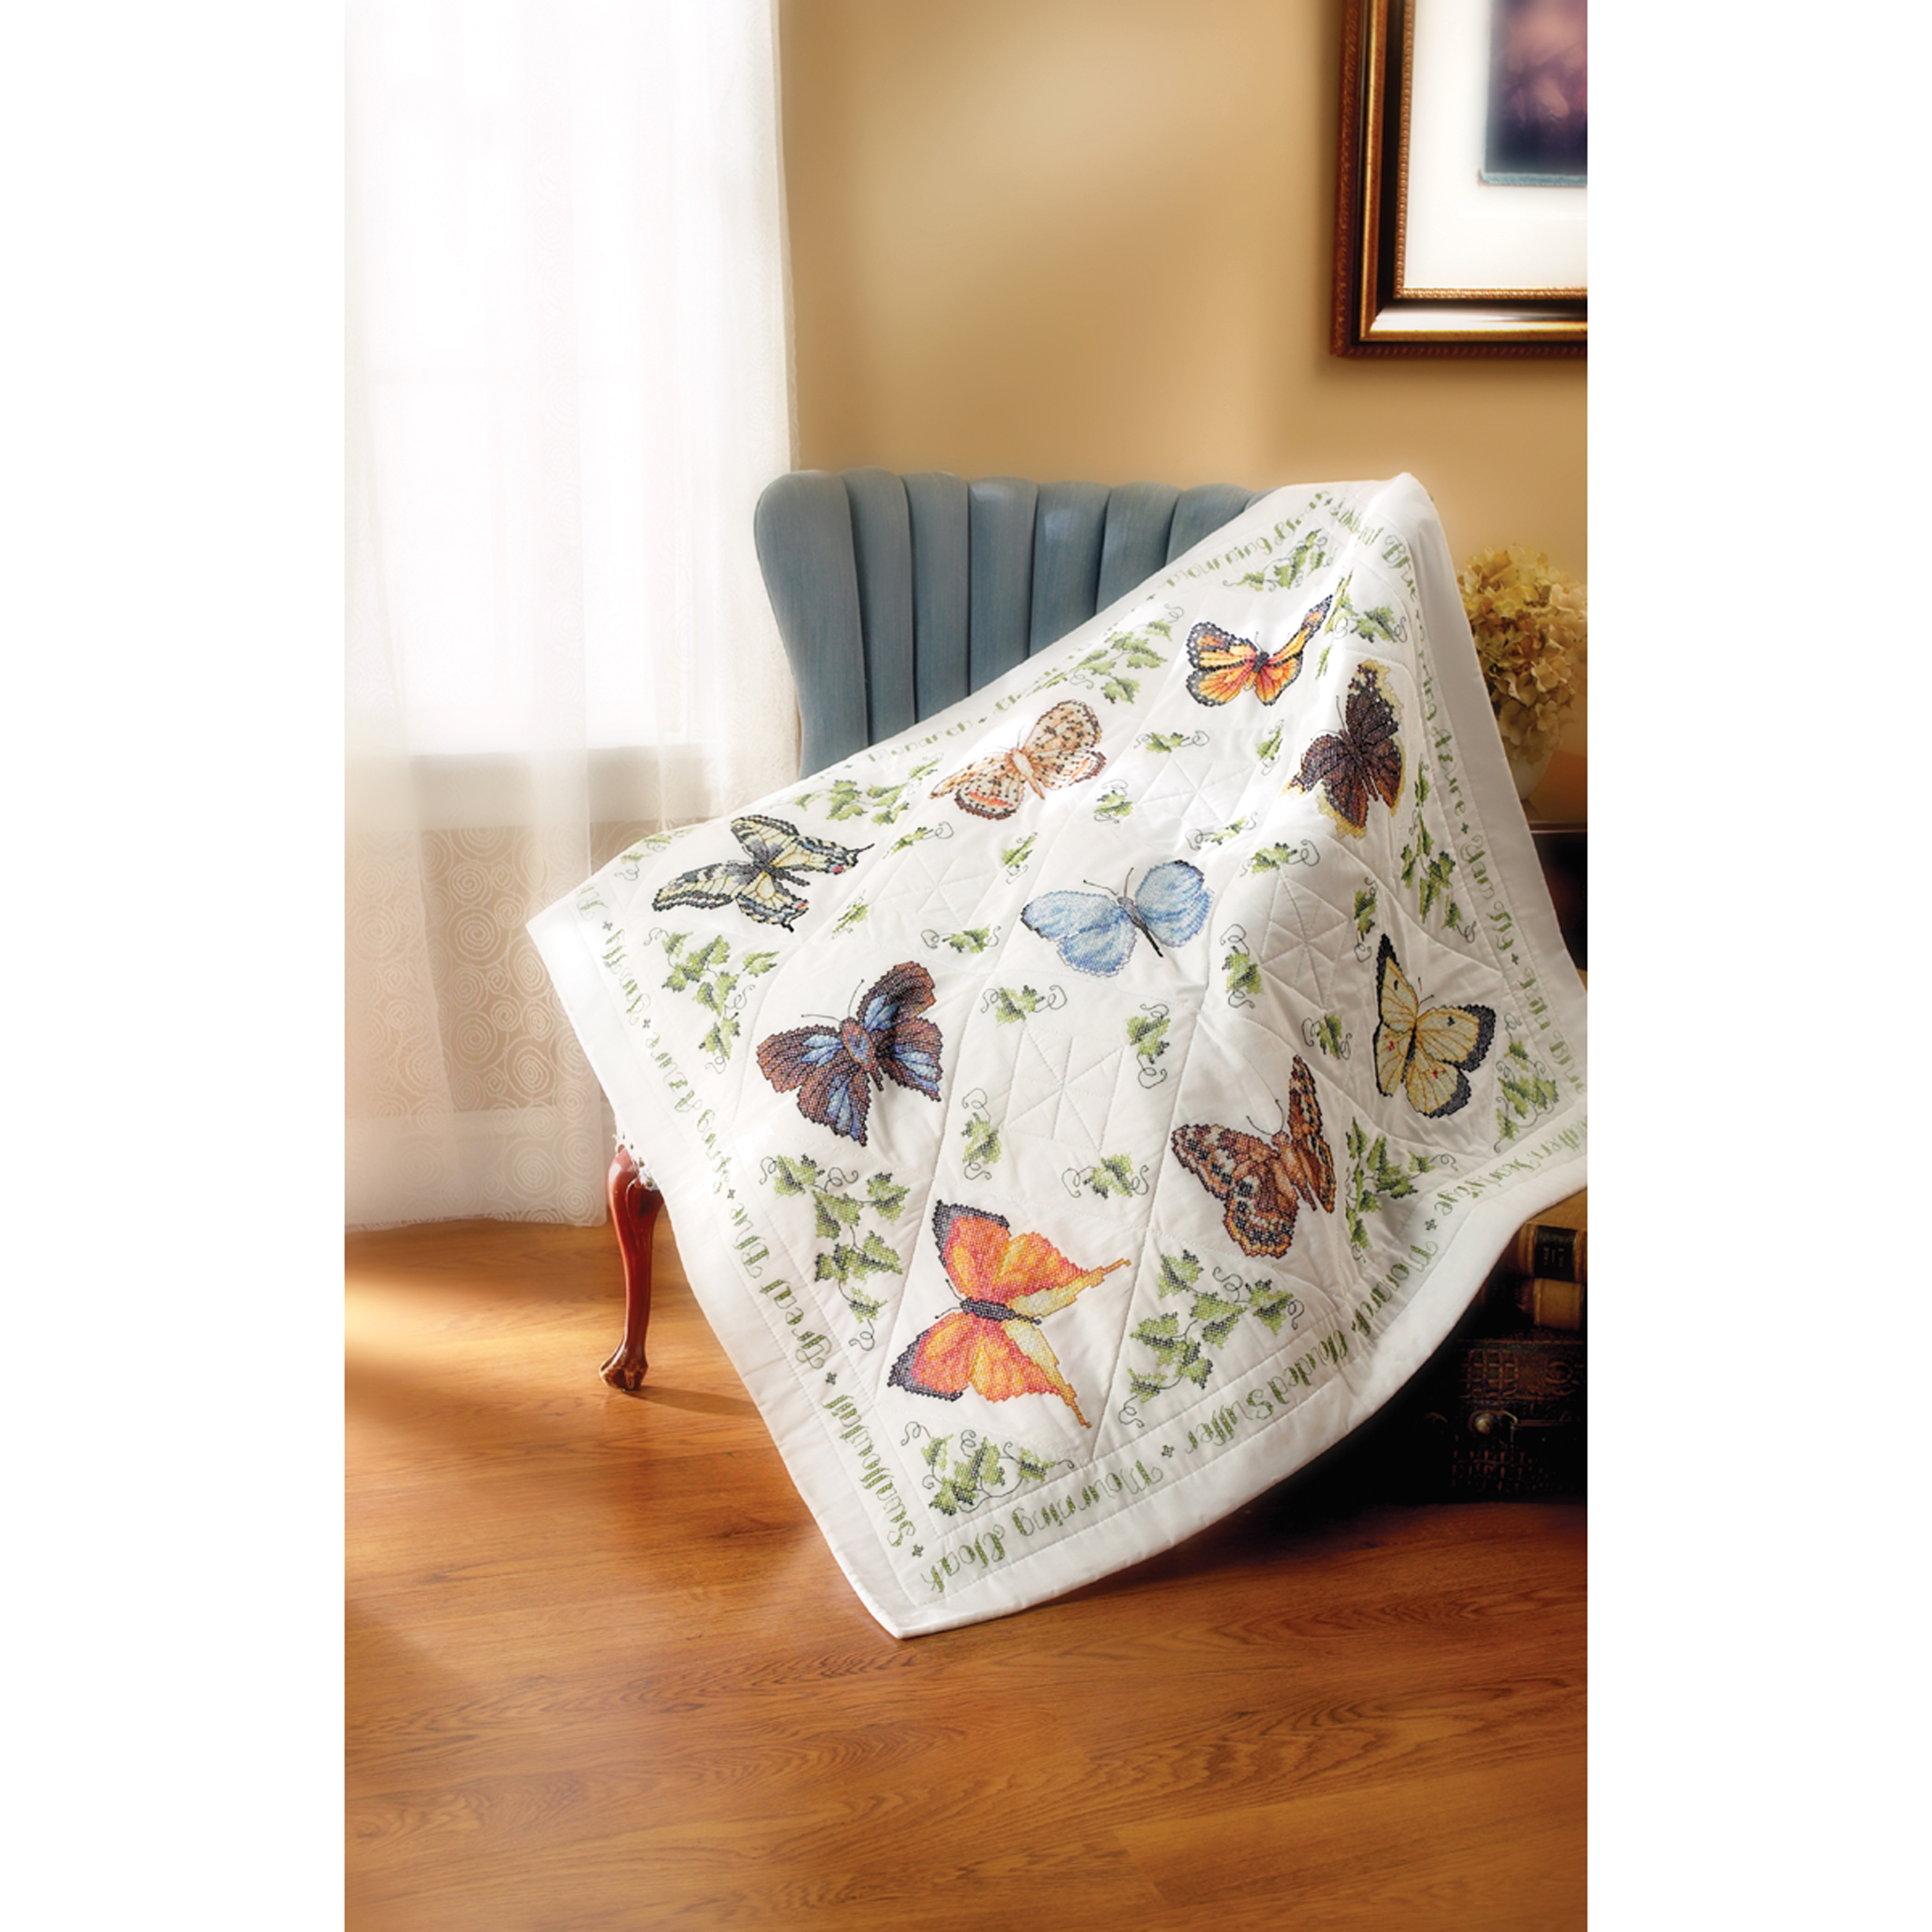 Bucilla Stamped Cross Stitch Kit, Lapquilt Butterflies